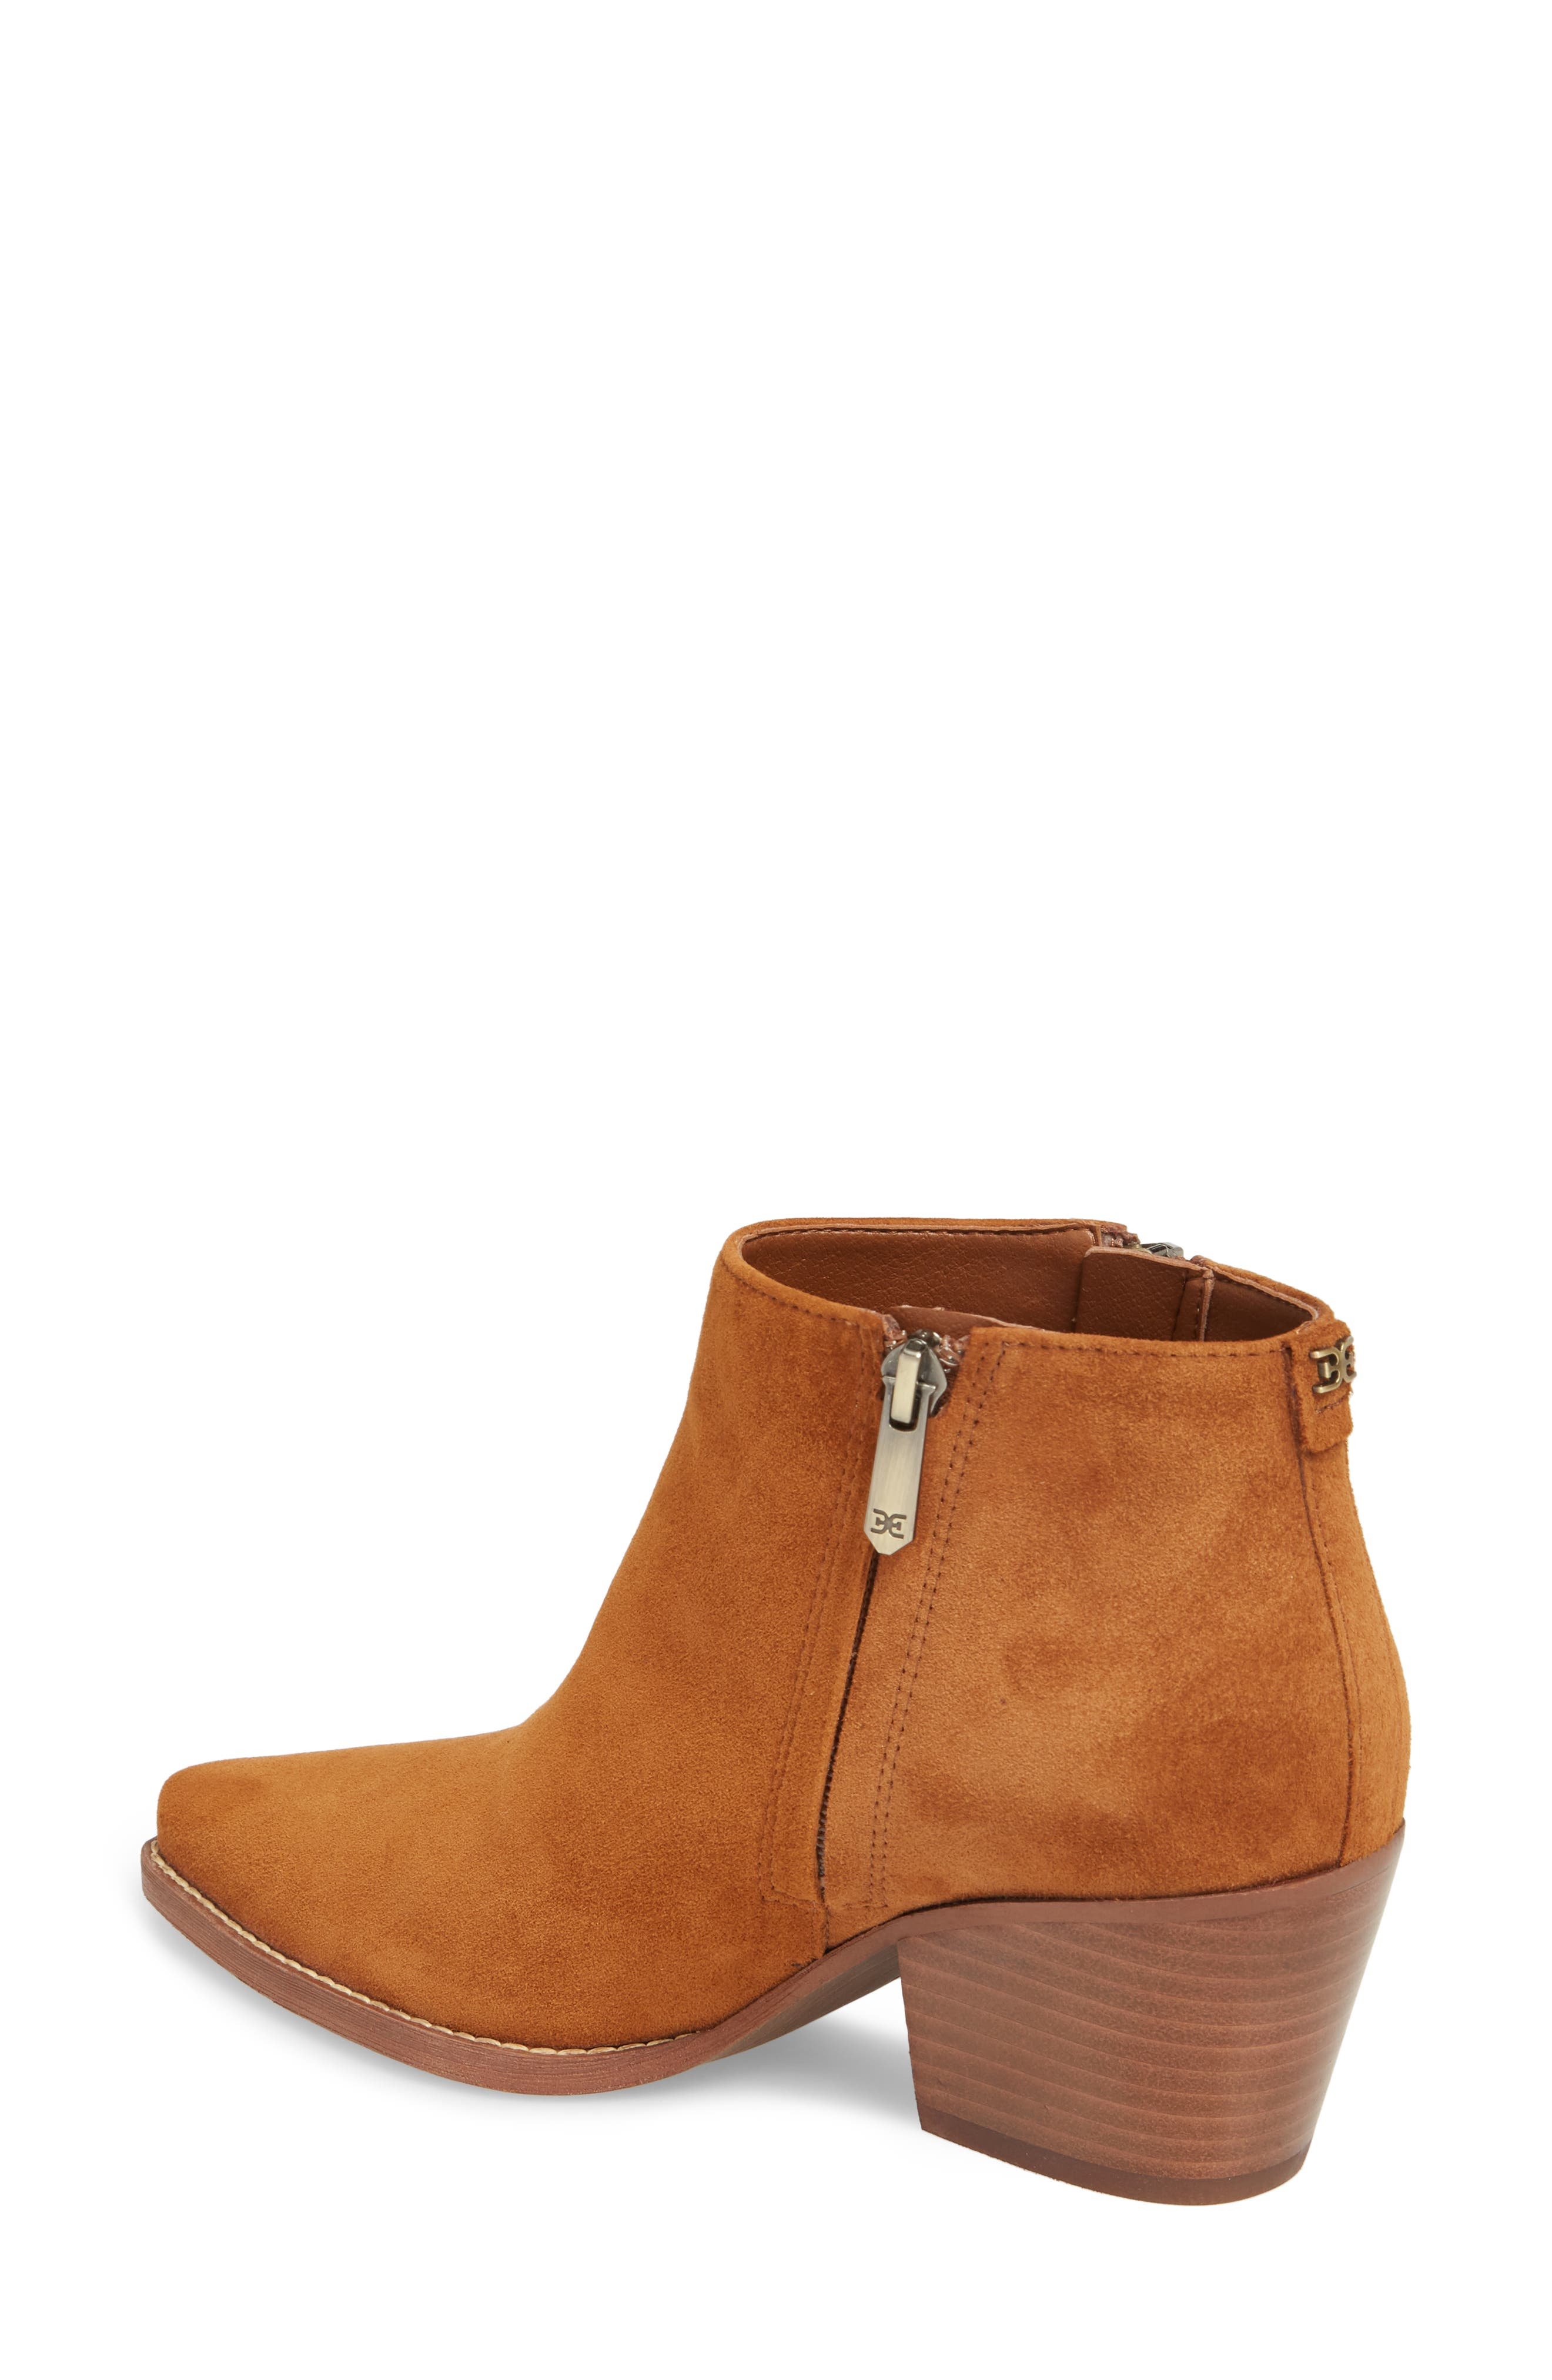 Walden Bootie,                             Alternate thumbnail 2, color,                             LUGGAGE SUEDE